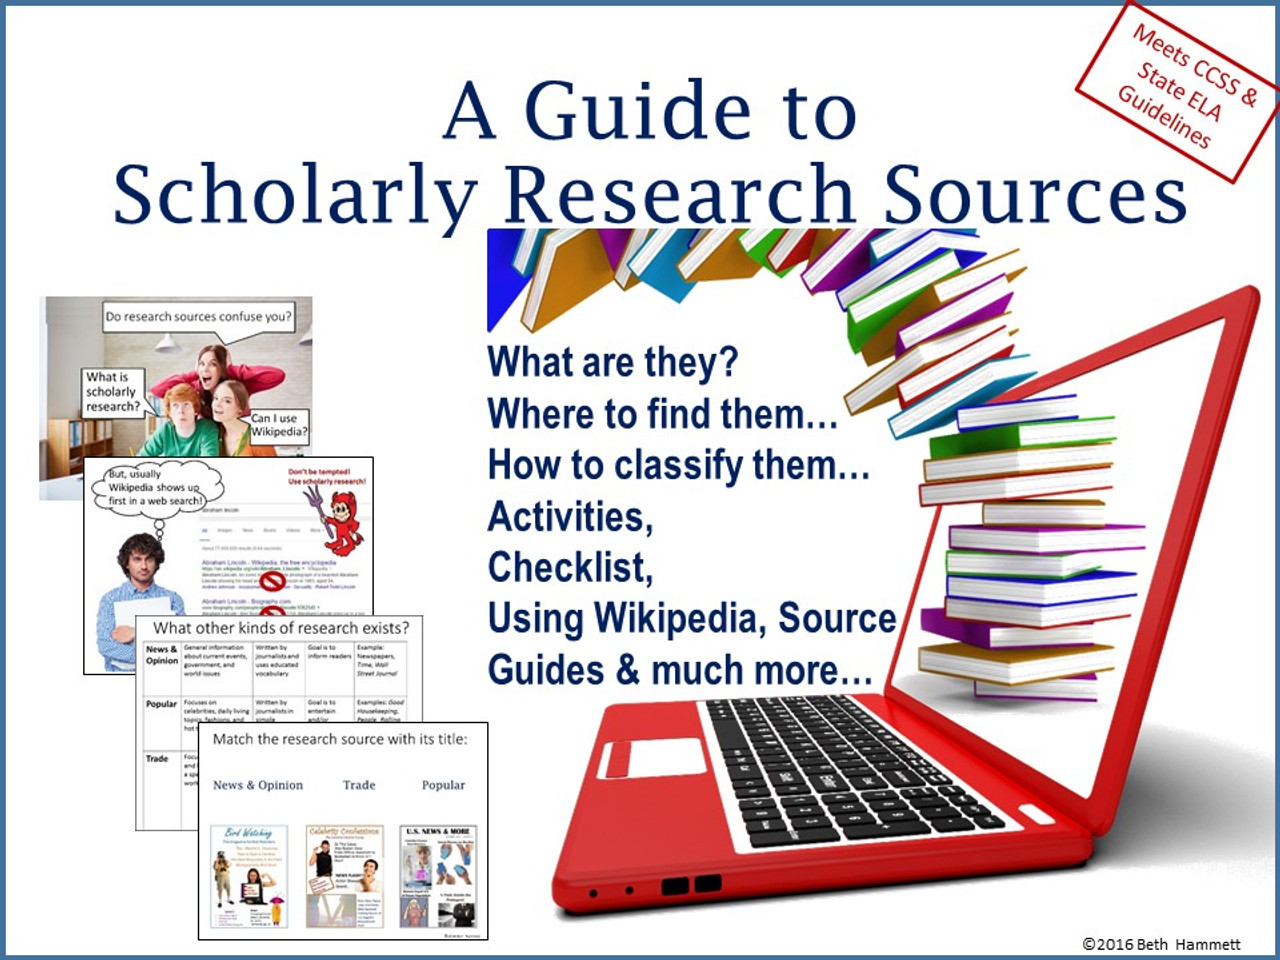 A Guide to Scholarly Research